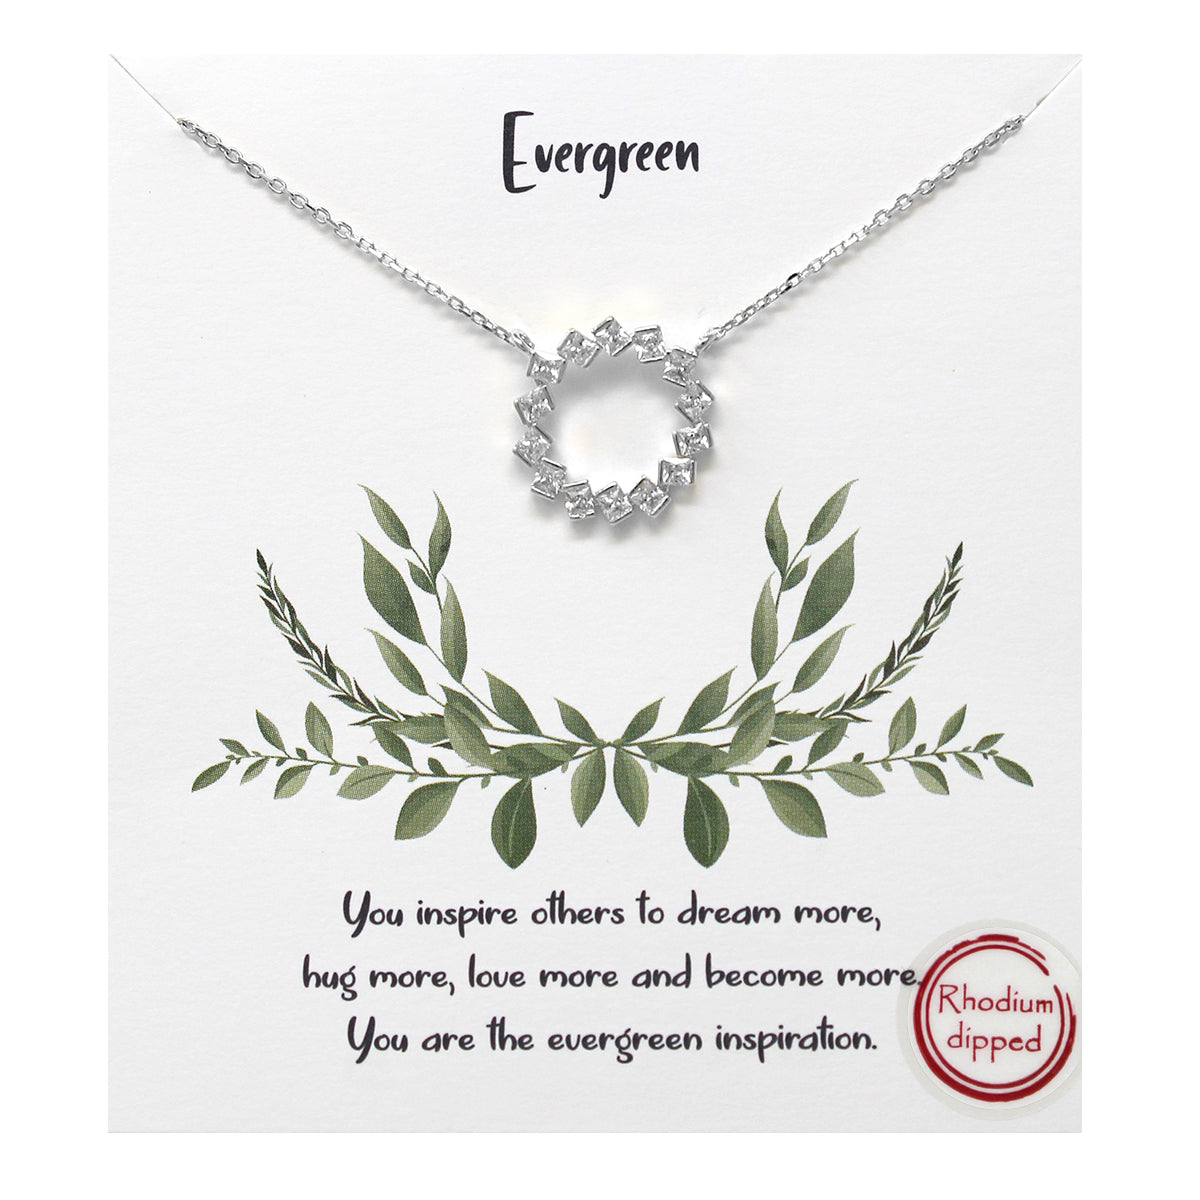 Tell Your Story: CZ Pave Wreath Pendant Simple Chain Short Necklace